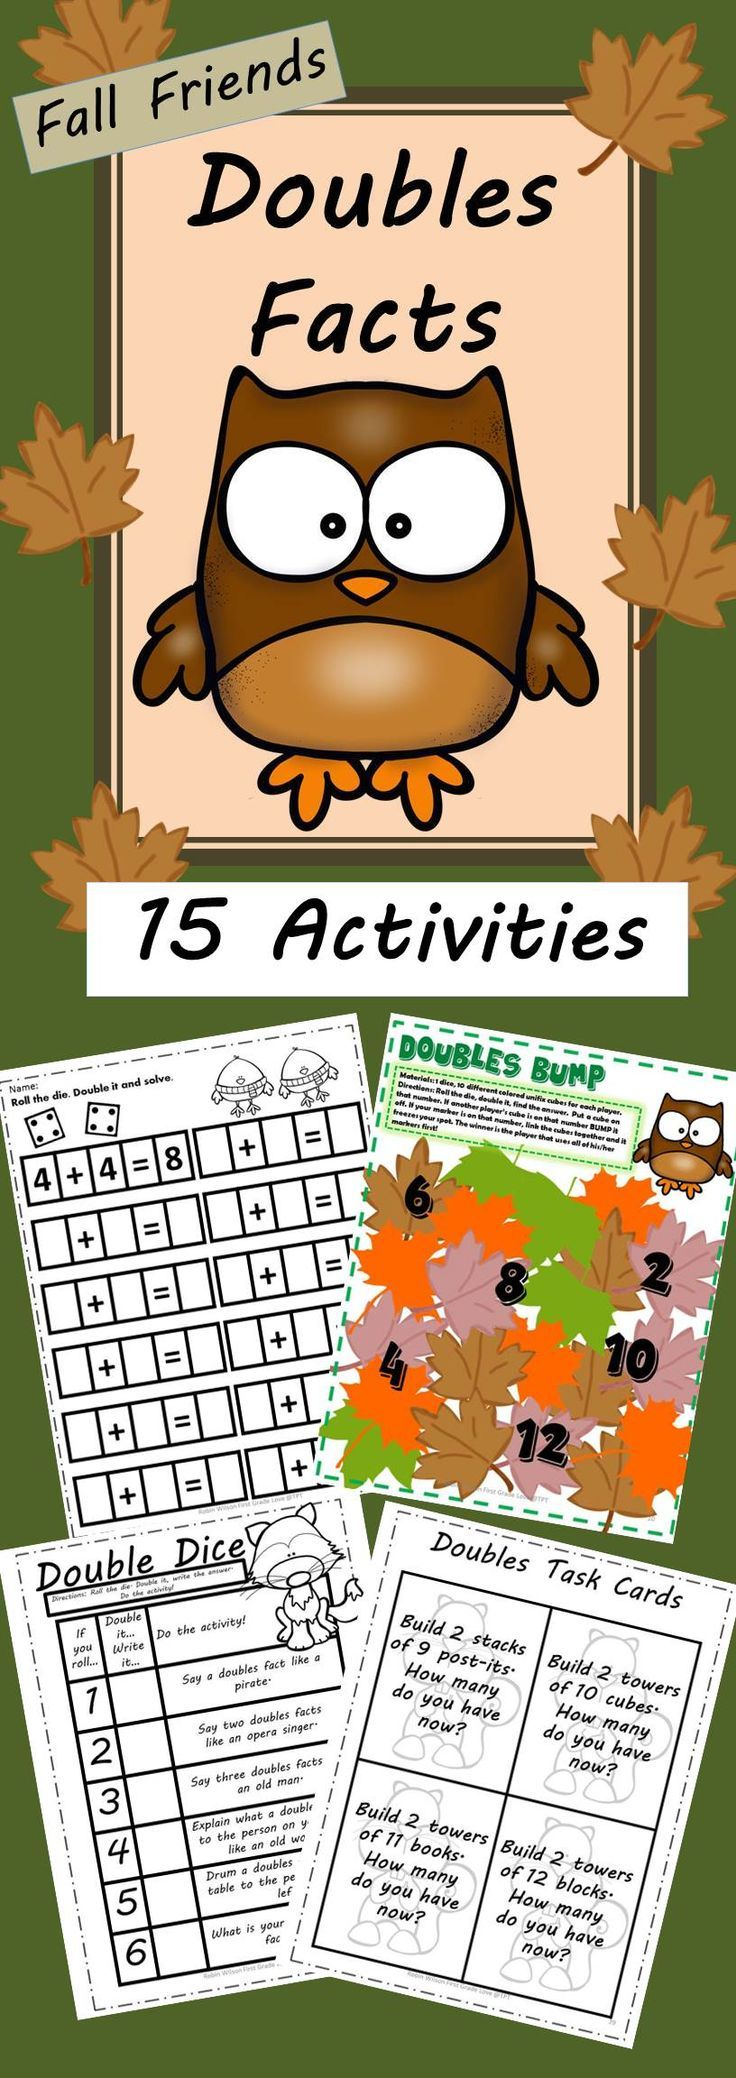 Doubles Facts Activities Doubles Facts Math Activities